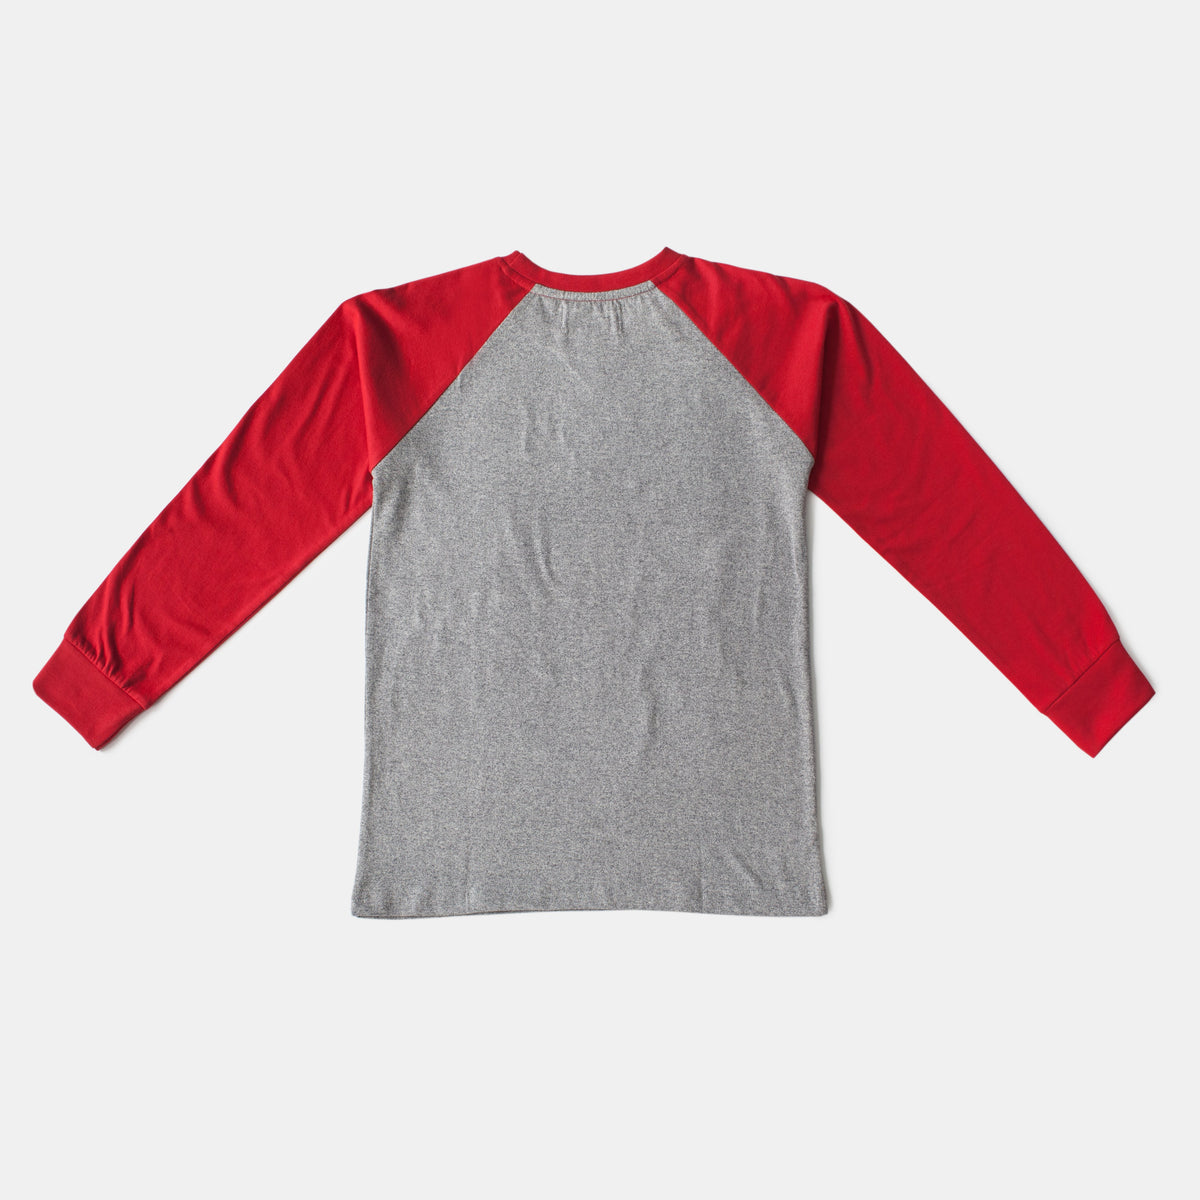 Red/Gray Baseball Style Raglan Long Sleeve Tee